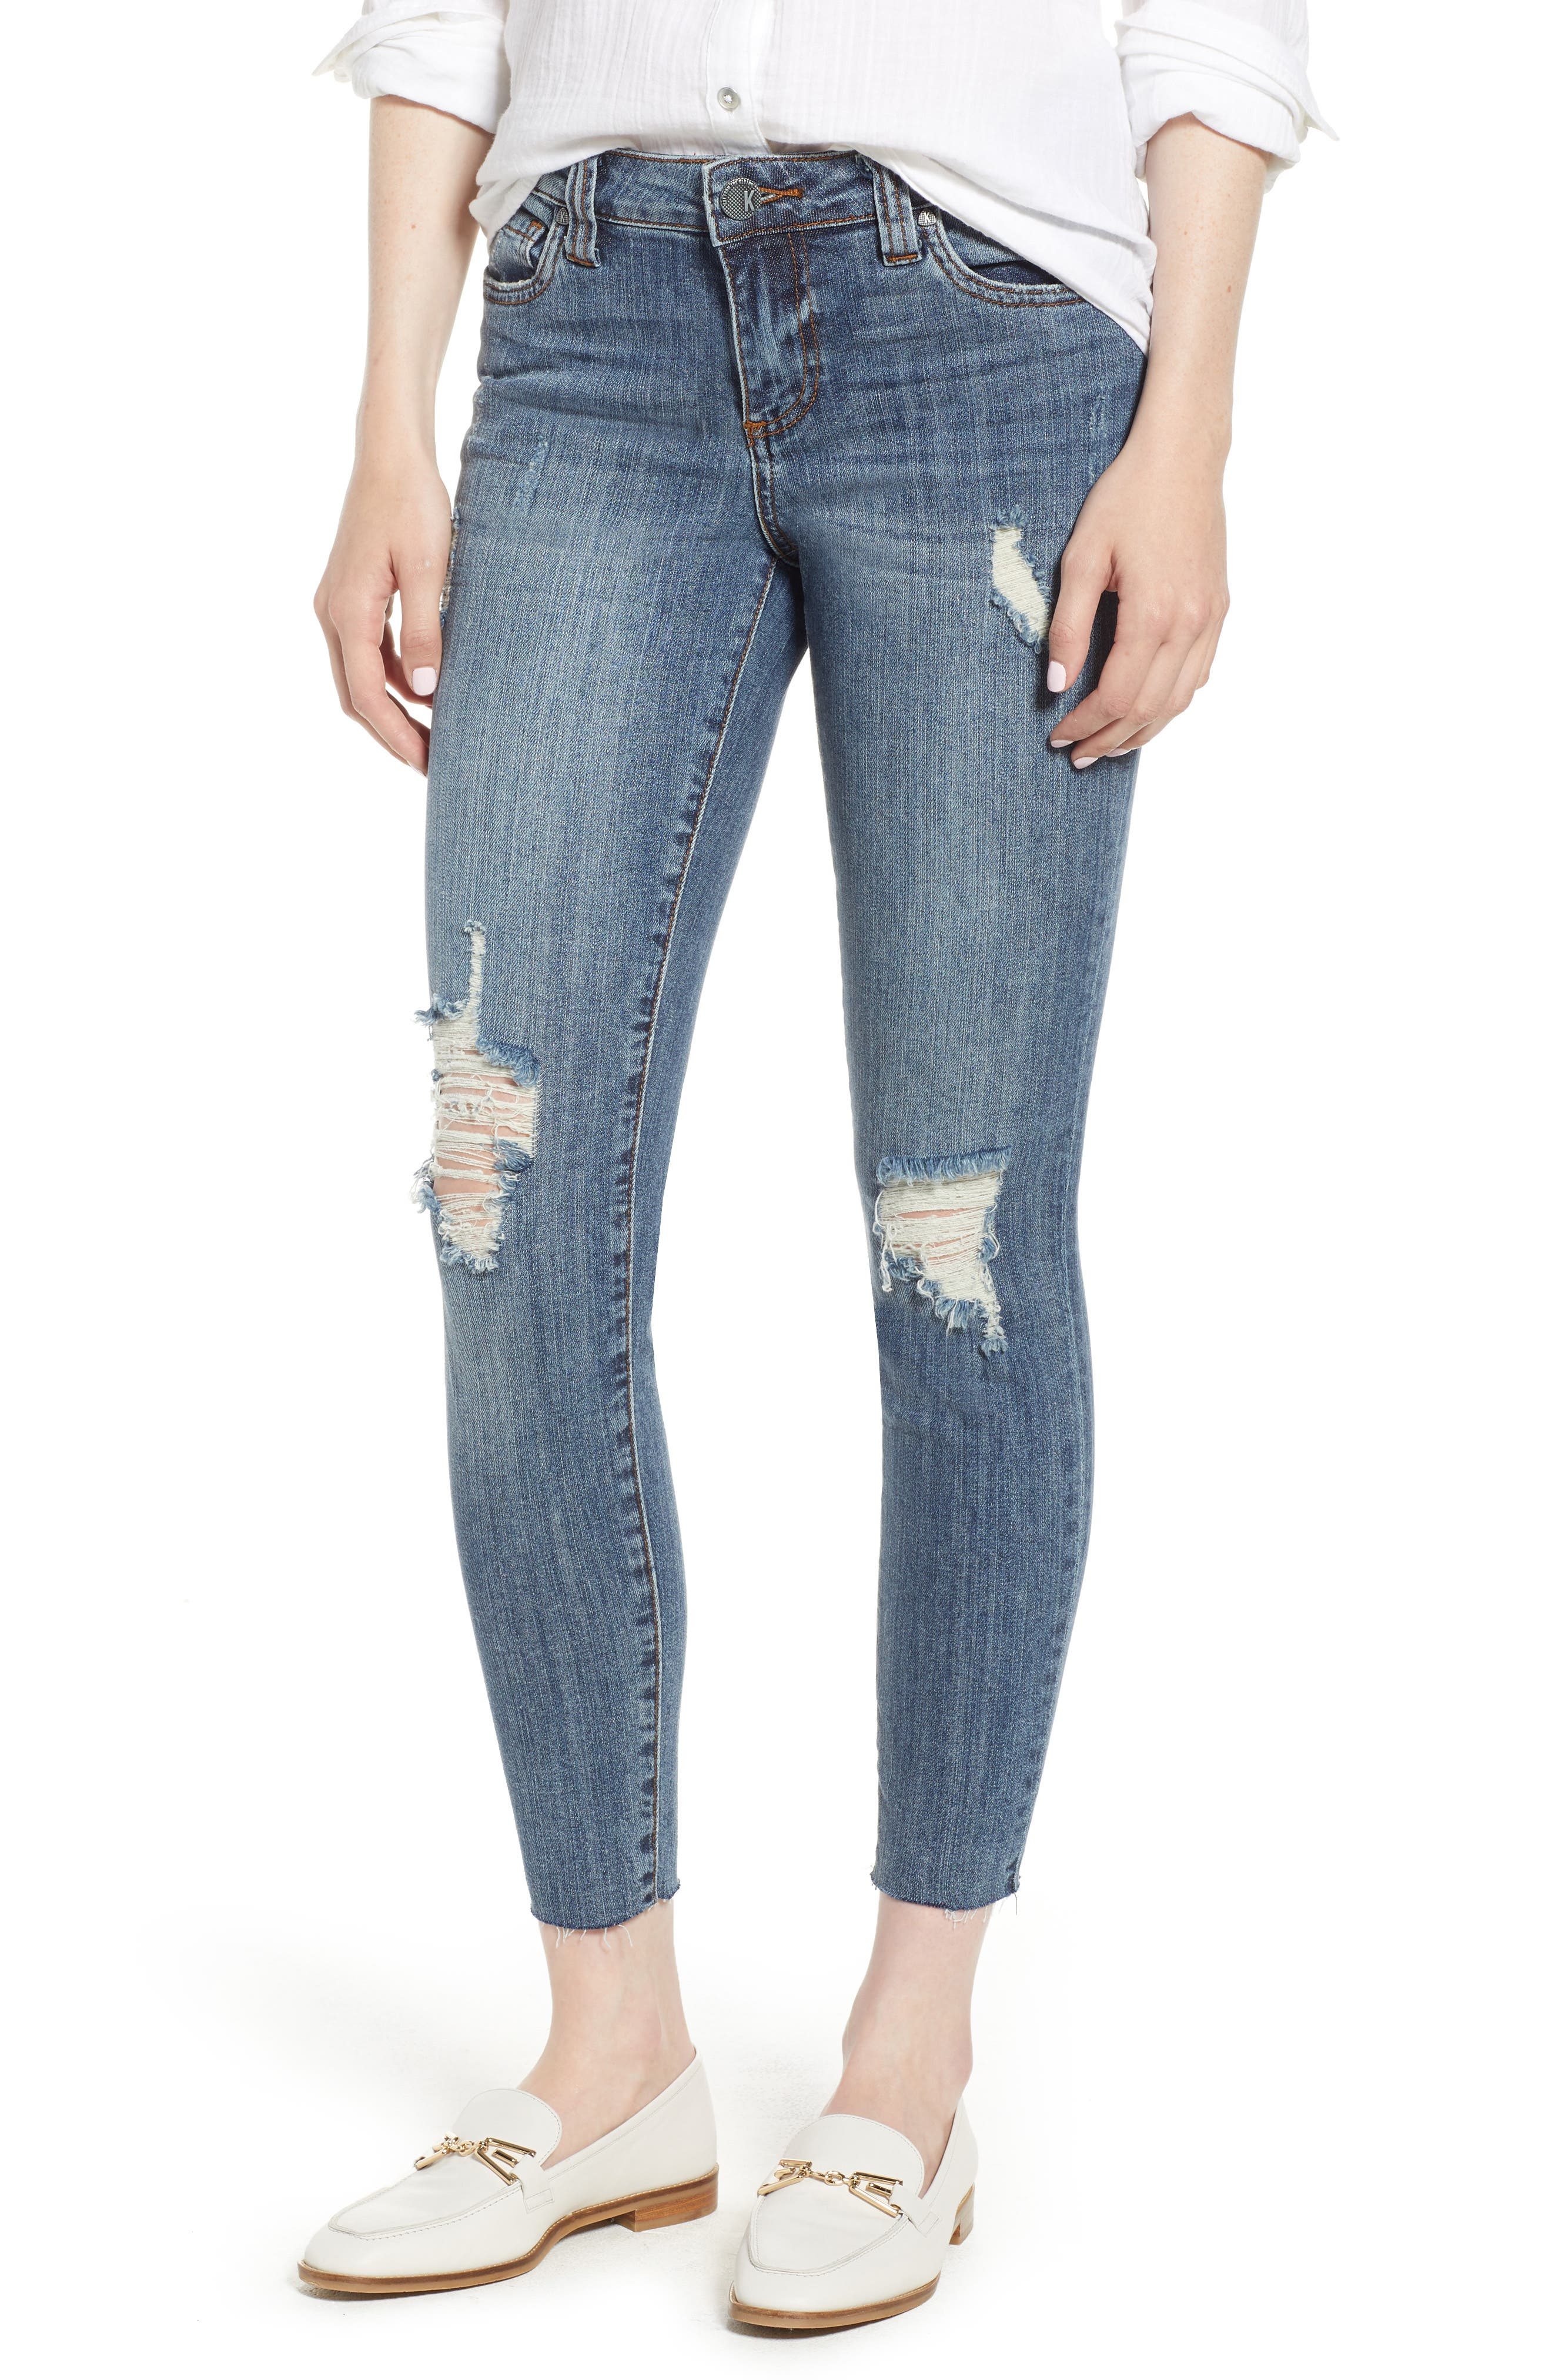 KUT from the Kloth Connie Raw Hem Ankle Jeans,                             Main thumbnail 1, color,                             Refinement